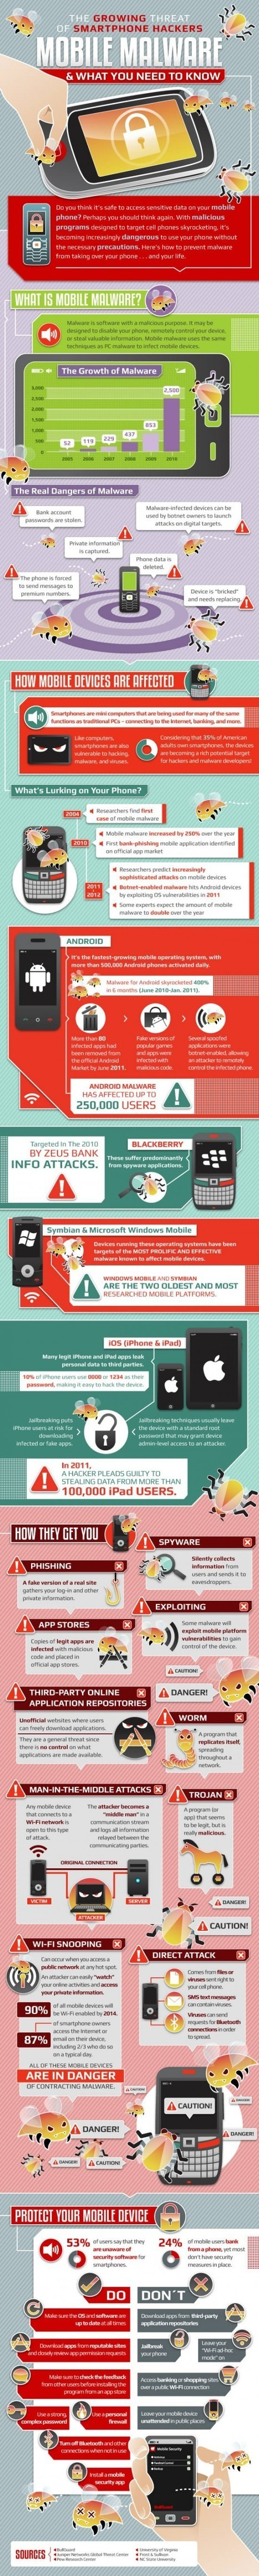 Mobile Security & Malware Protection - INFOGRAPHIC | Mobile (Post-PC) in Higher Education | Scoop.it